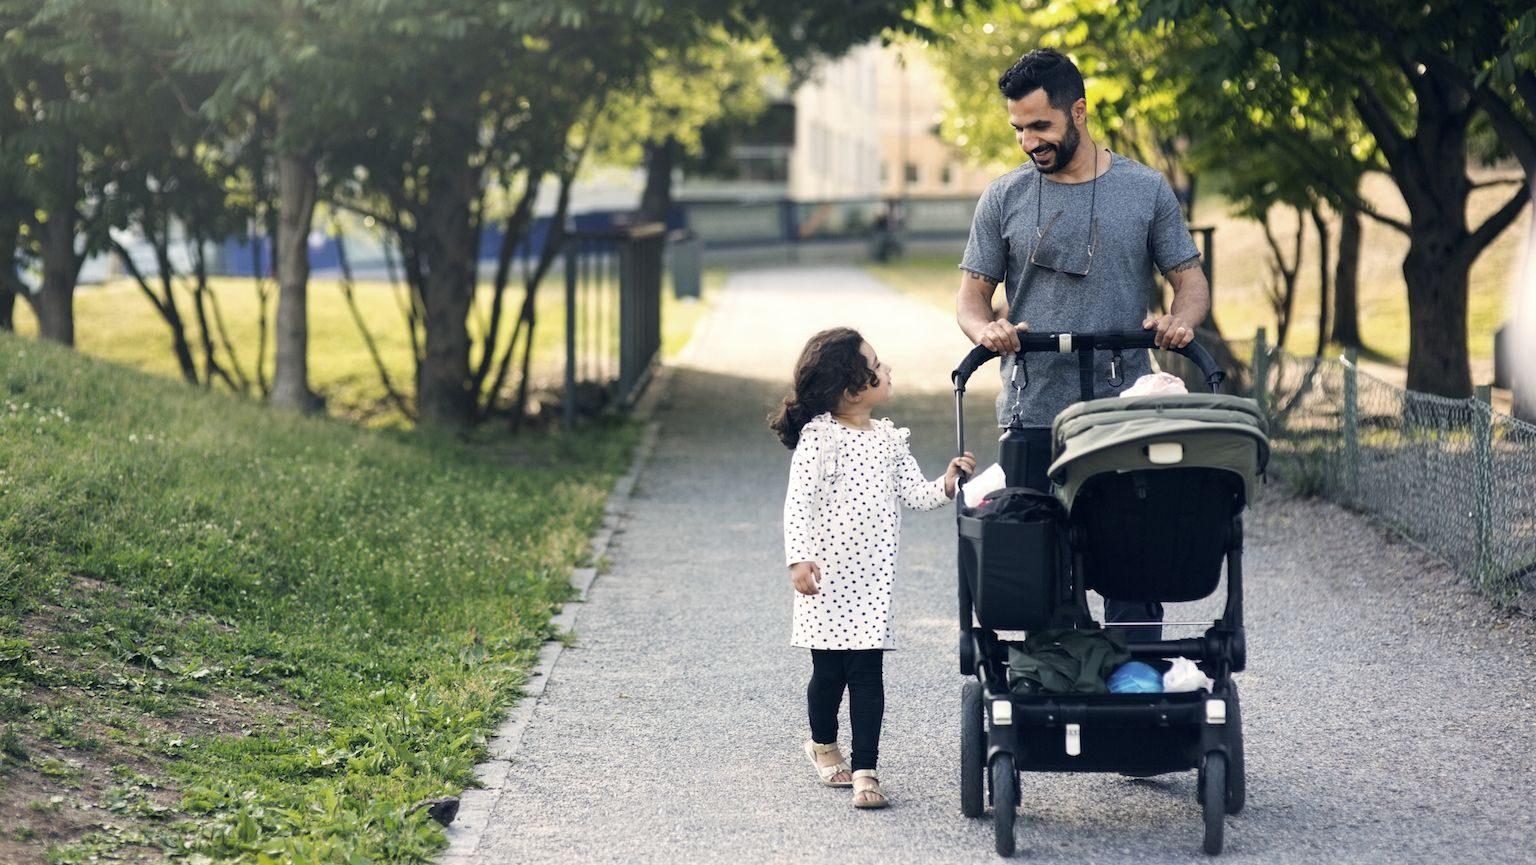 A dad pushing his baby in a stroller while he walks next to his daughter